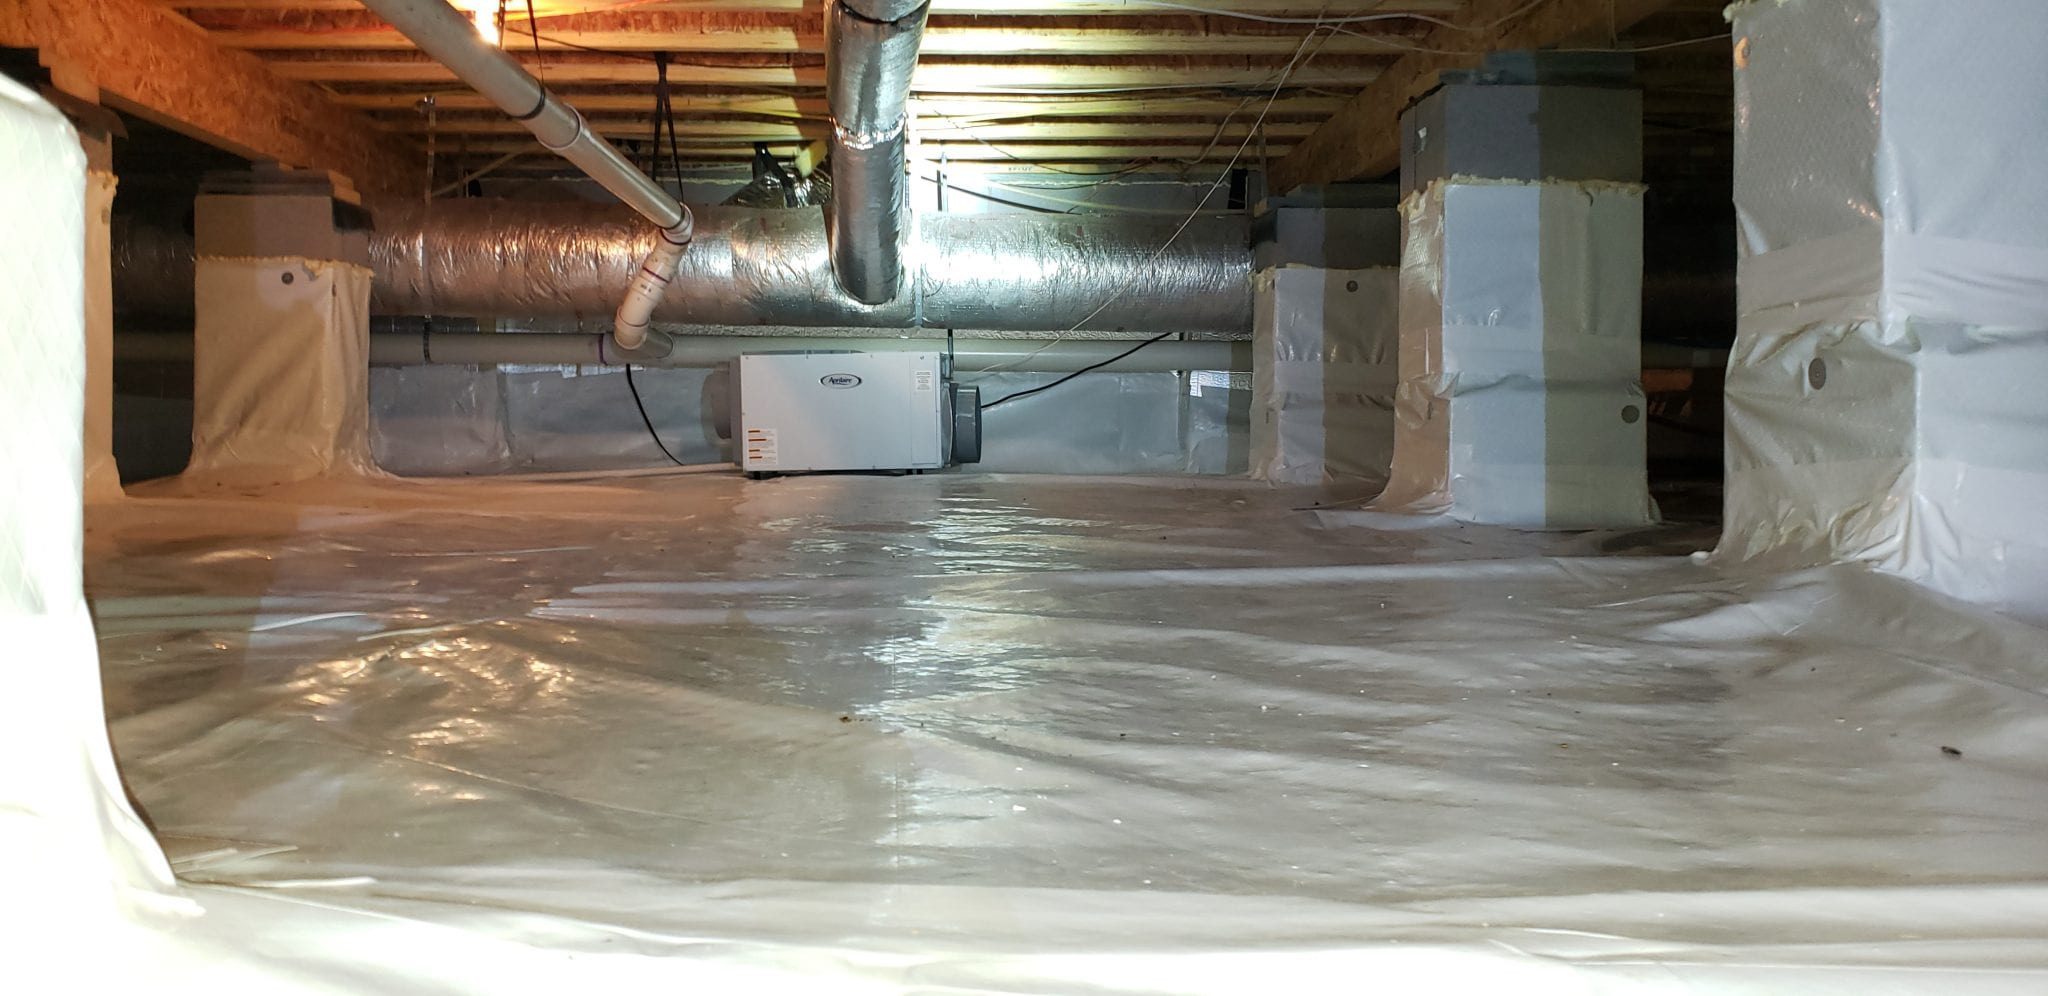 Crawl space, for mold remediation in Nashville, TN, Brentwood, TN & Franklin, TN call Preventive Pest Control today!